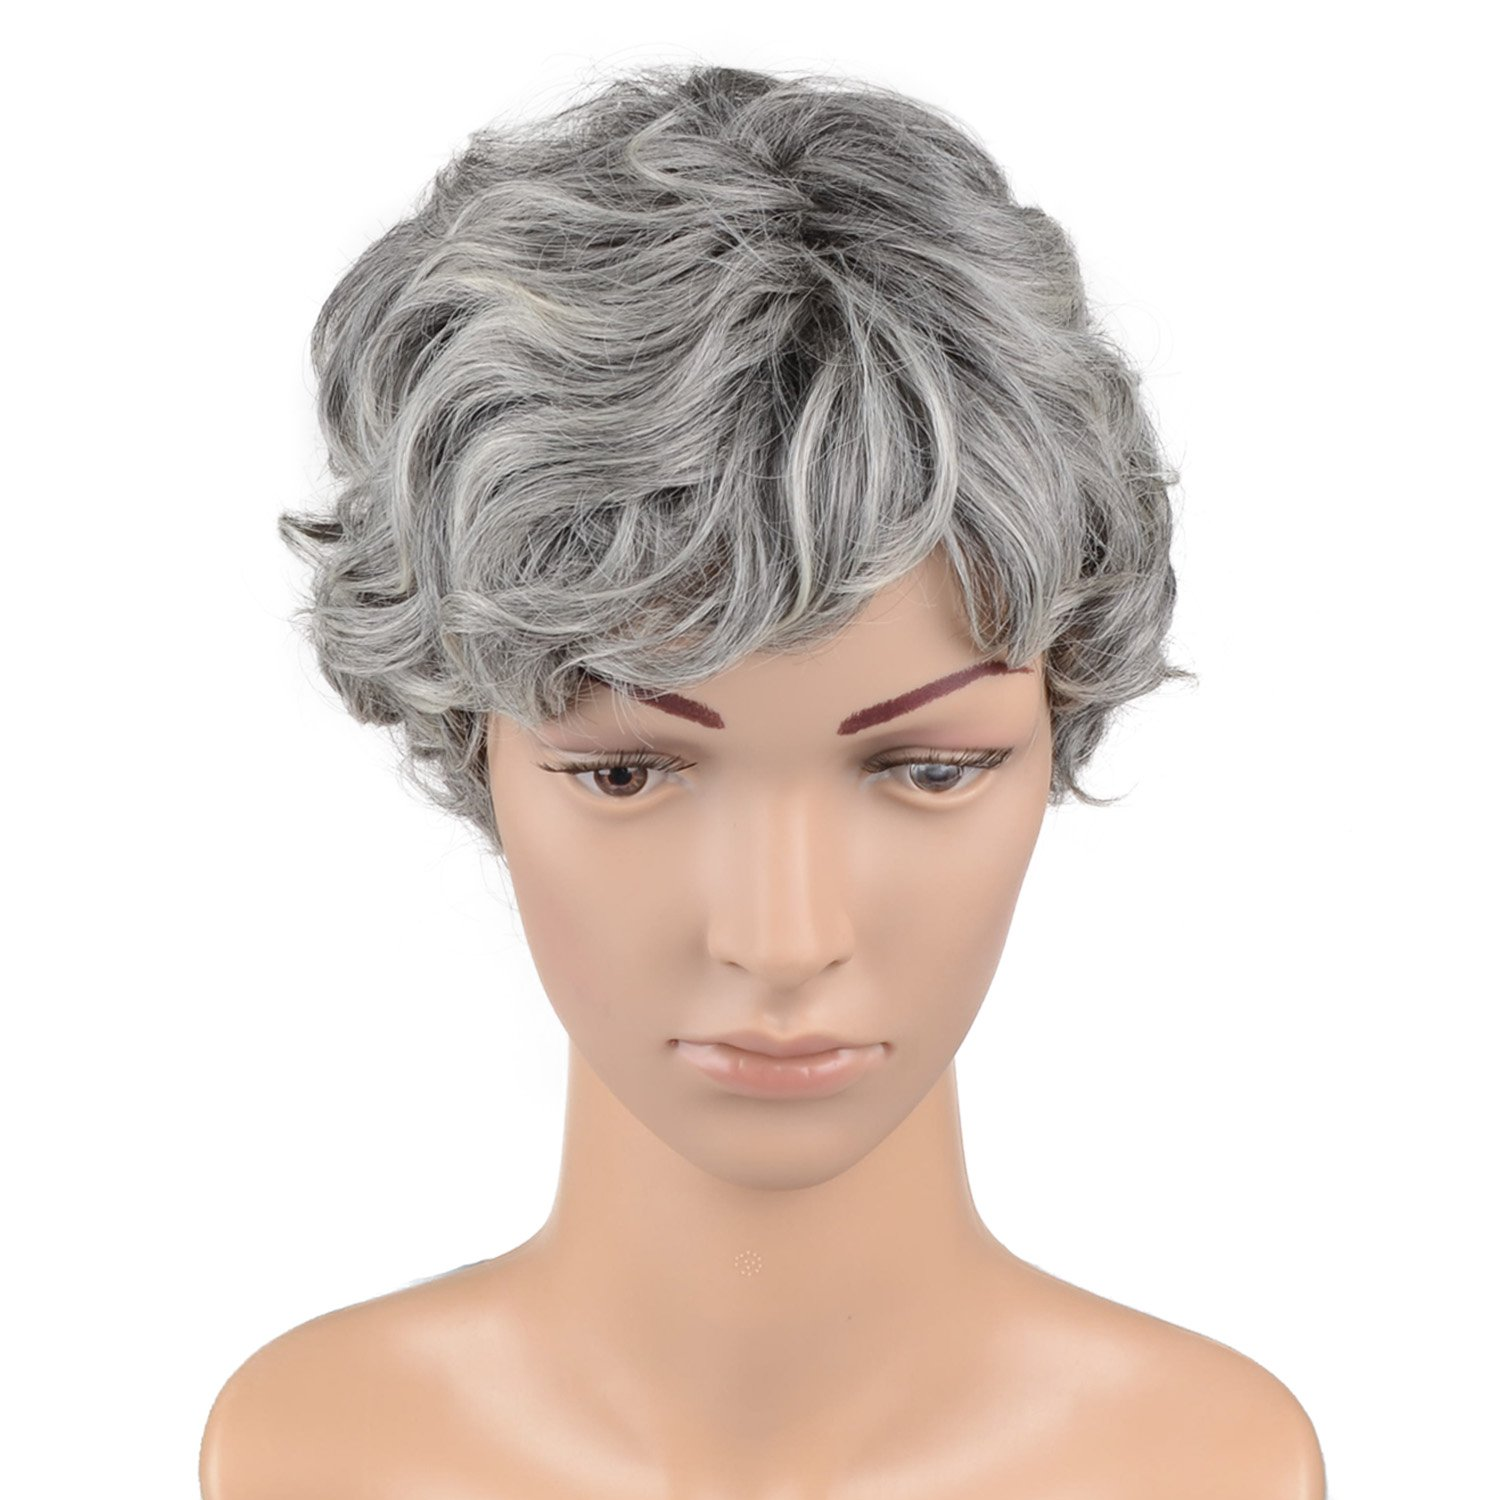 Hawkko Curly Short Cosplay Women Wig Kanekalon Fiber Party Wigs (Granny Gray)